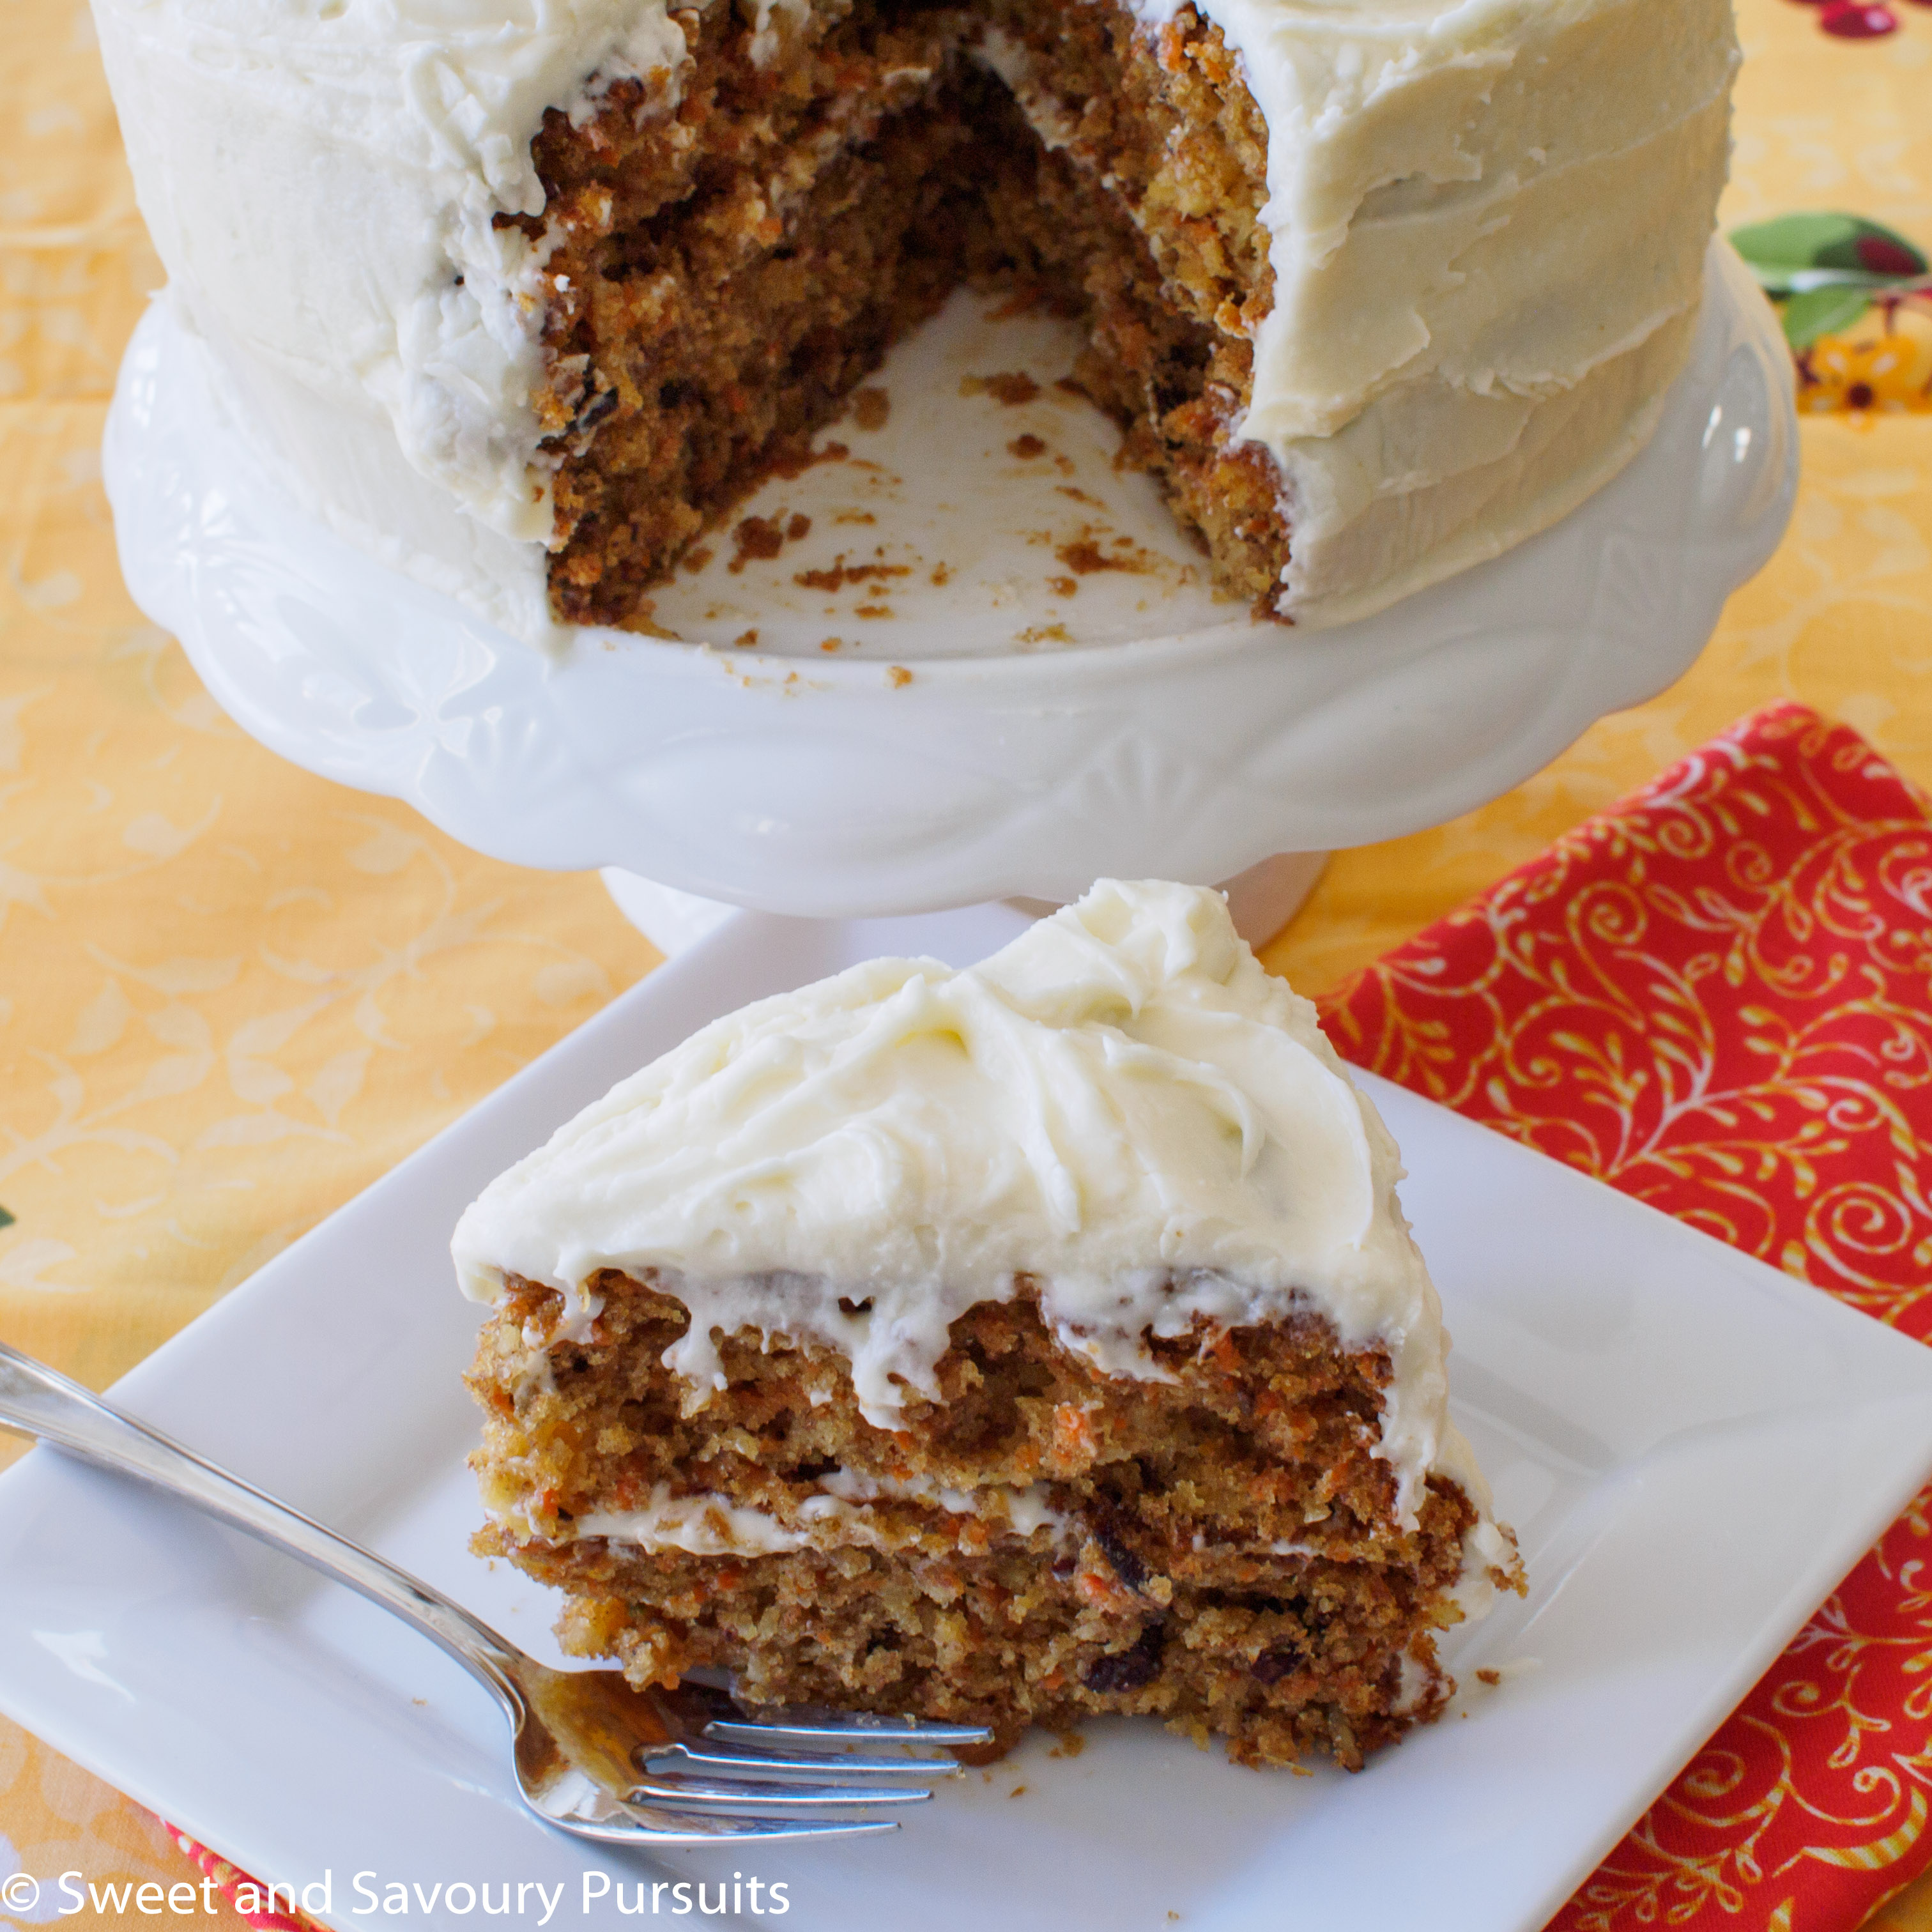 Carrot Cake with Cream Cheese Frosting - Sweet and Savoury Pursuits